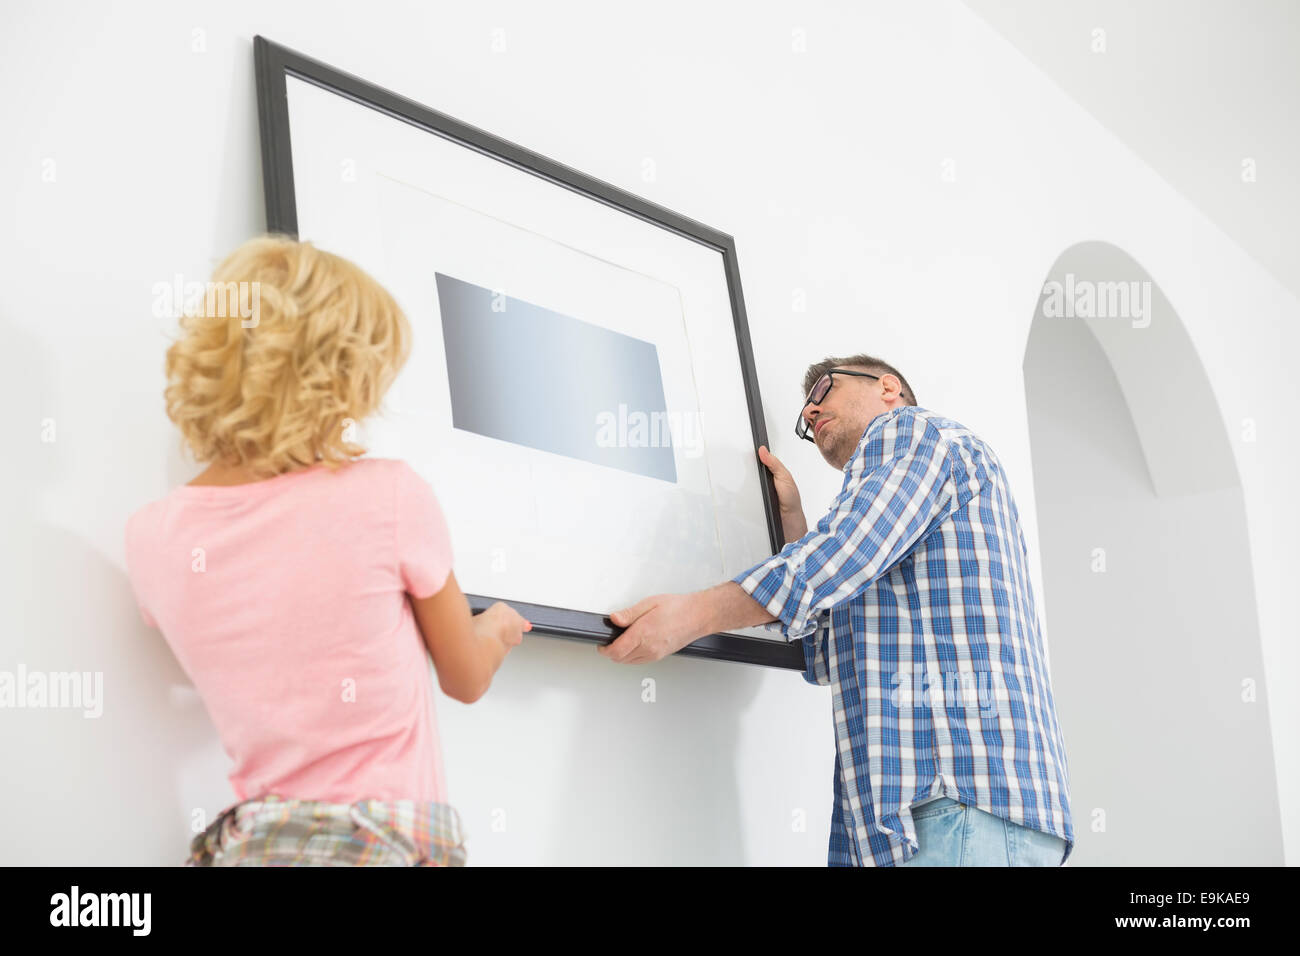 Couple hanging picture frame on wall in new house - Stock Image